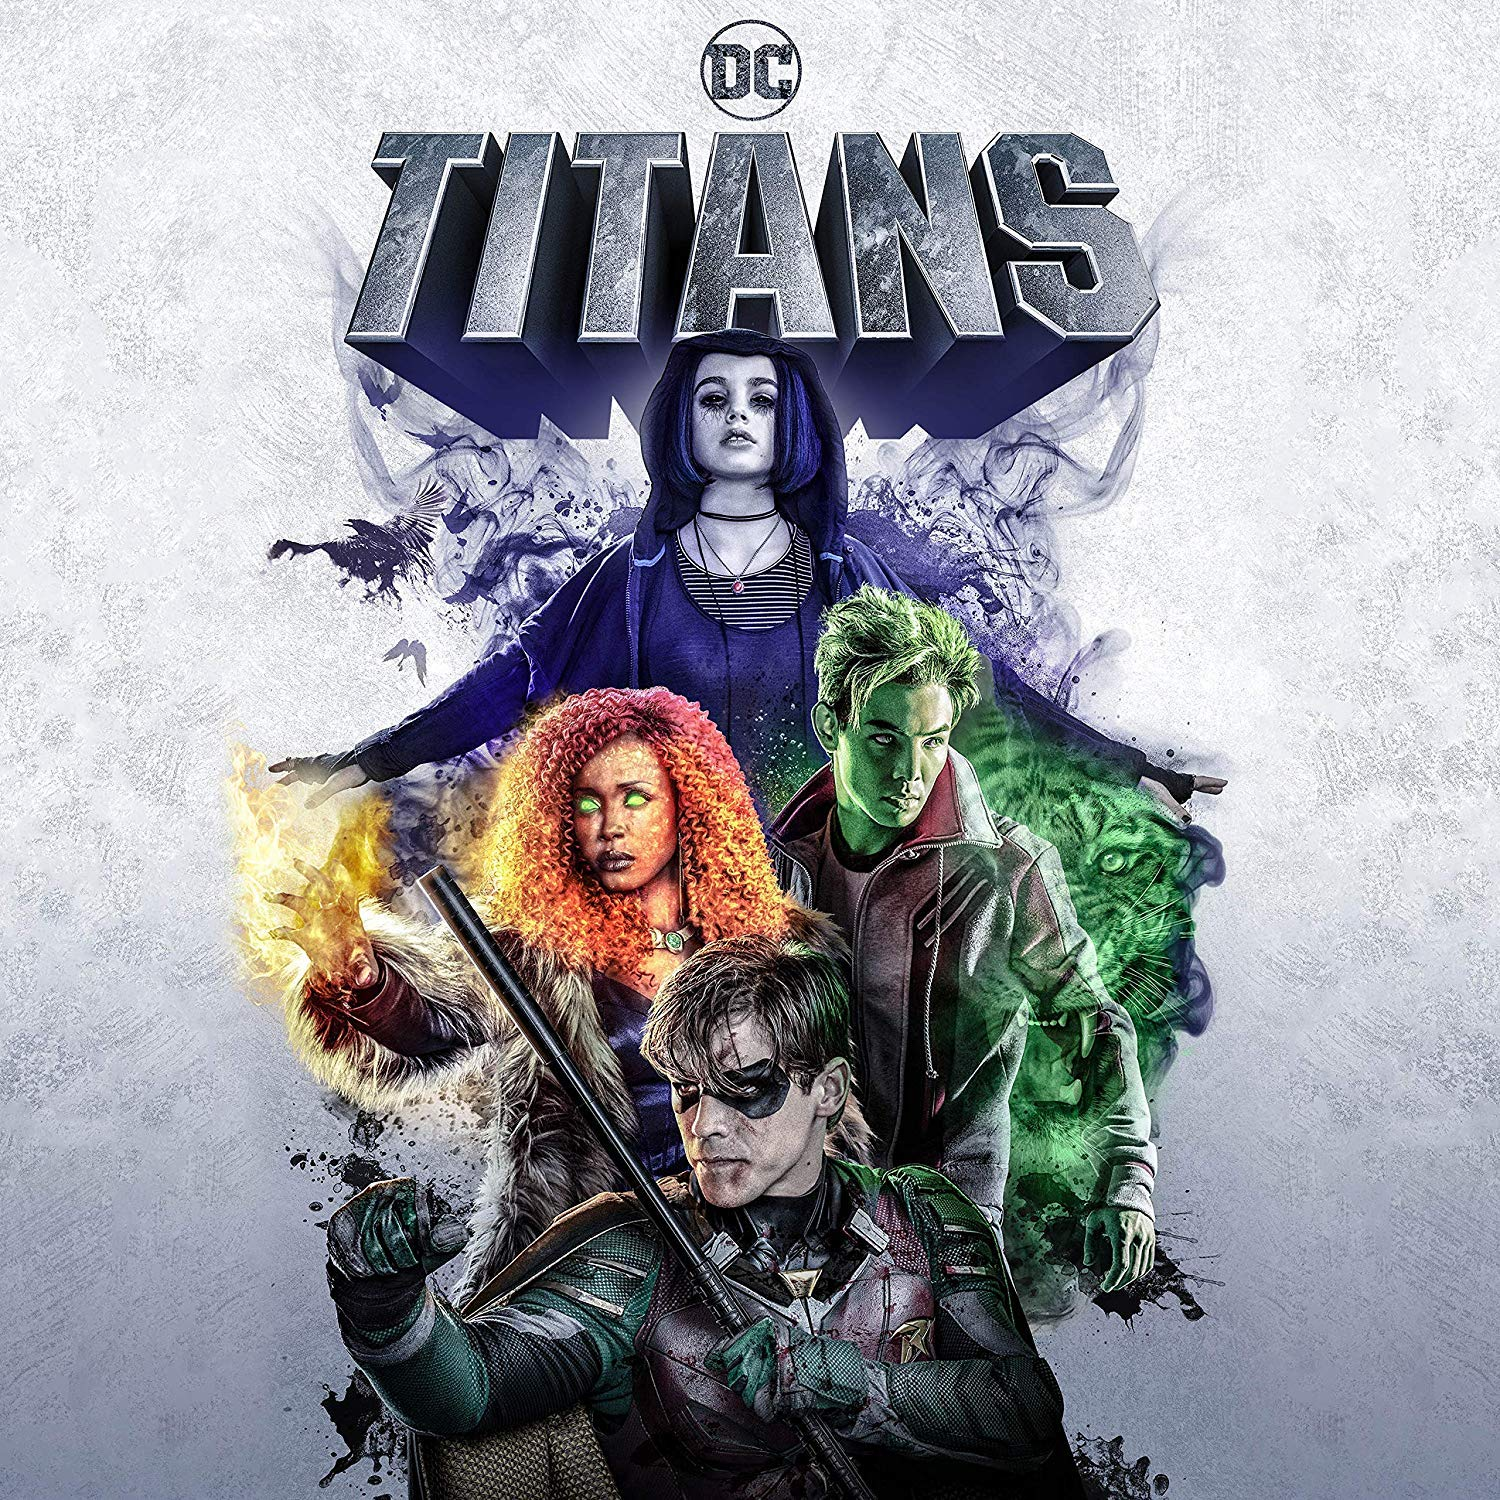 Amazon.com: Titans: The Complete First Season (Blu-ray): Various ...